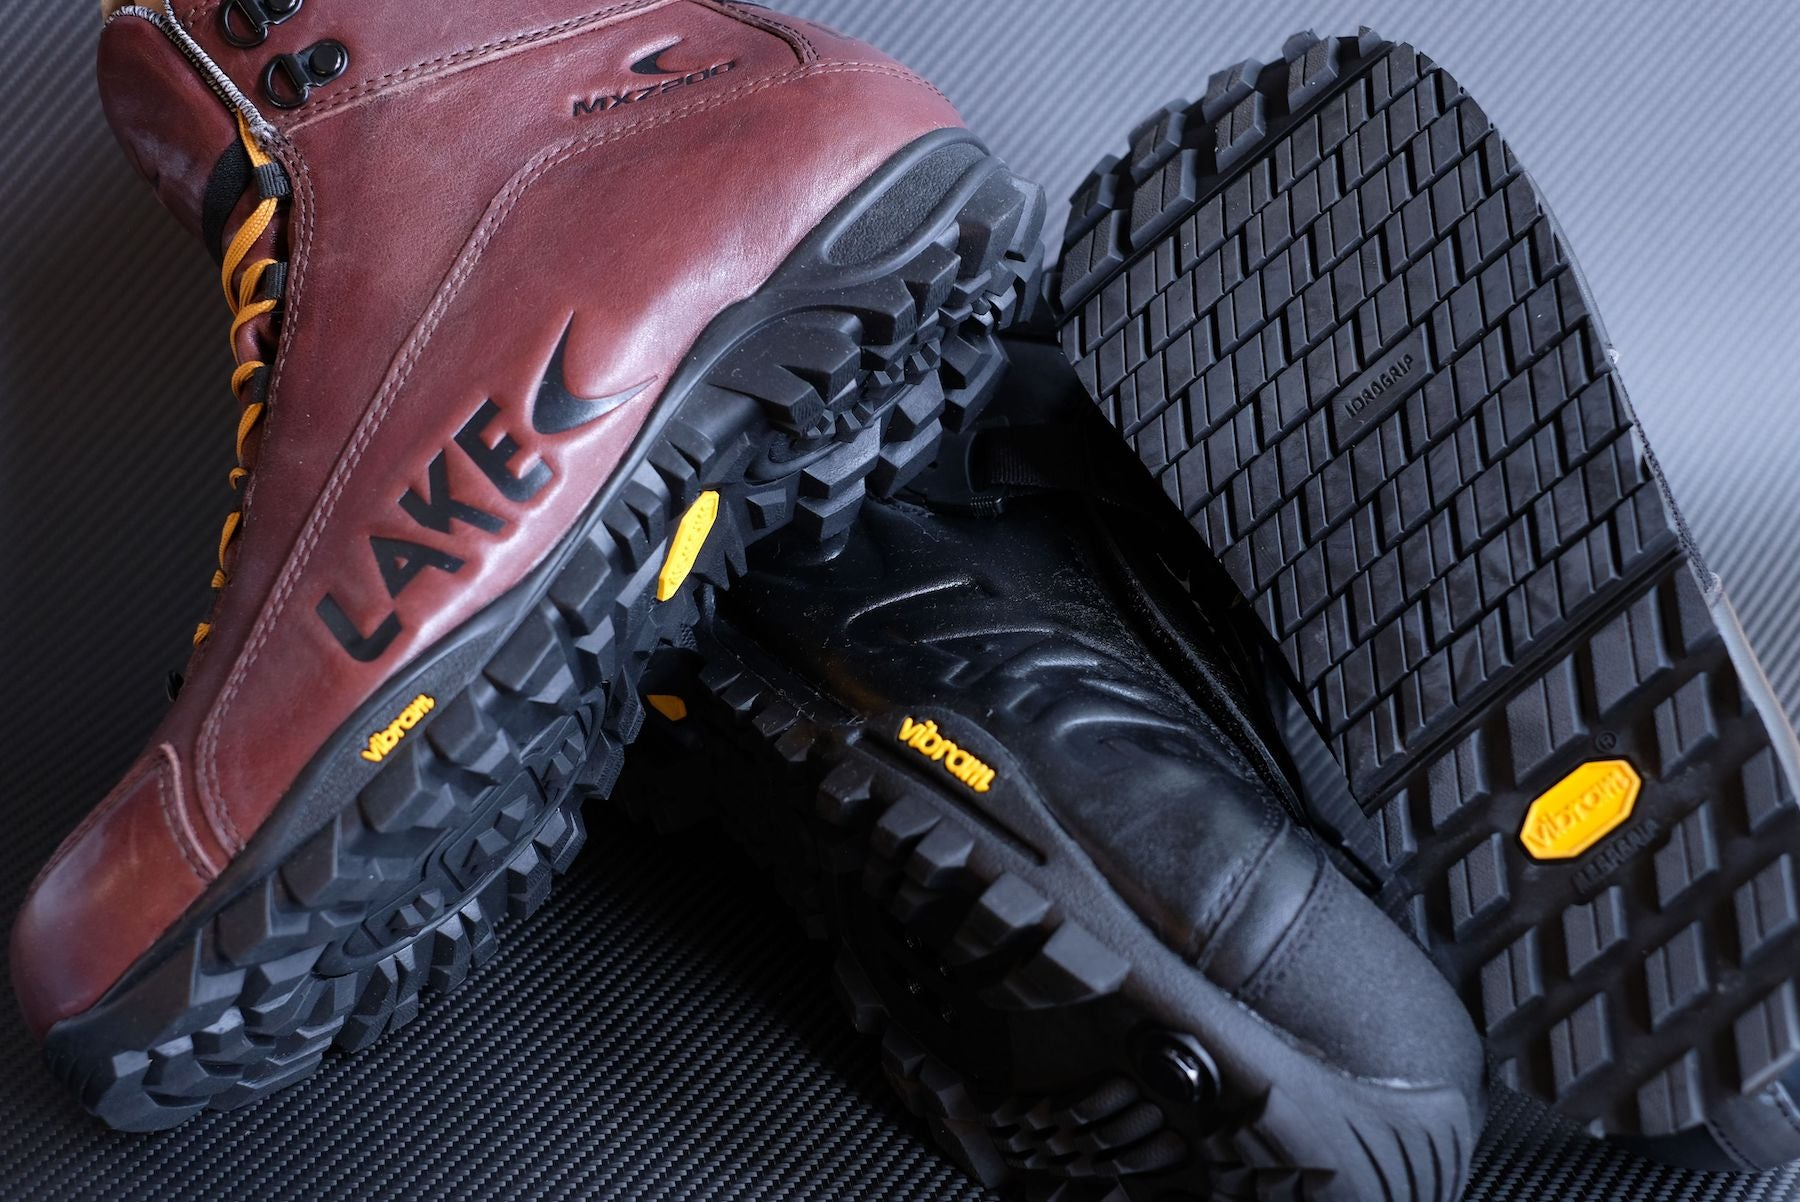 Vibram® is the world leader in rubber soles for extreme athletic pursuits. Our three exclusive Vibram® soles are the first in the cycling world & set a new standard for function & durability in cycling shoes.